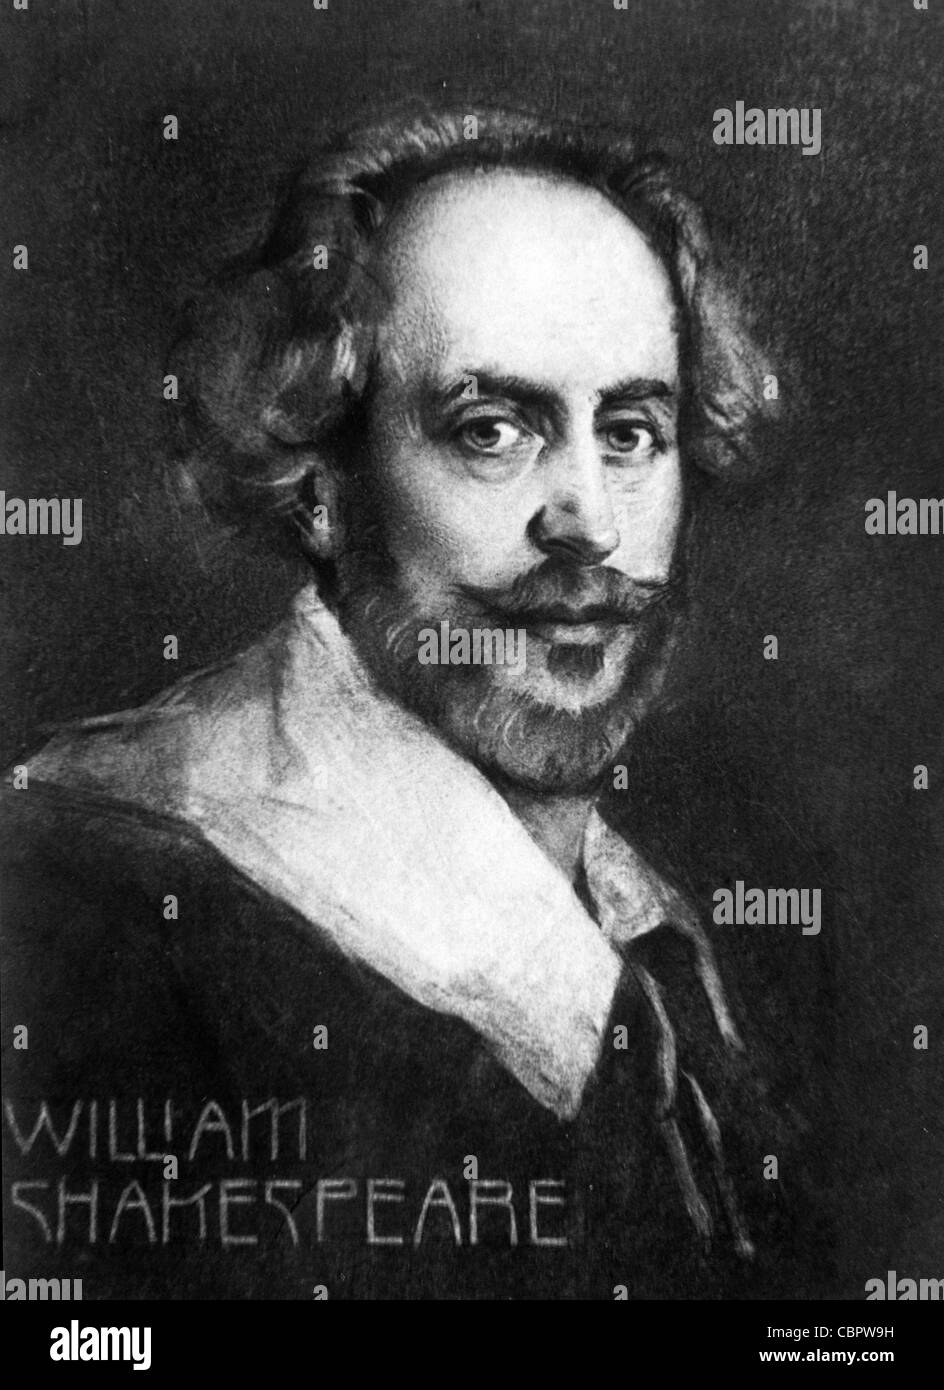 a biography of william shakespeare an english writer William shakespeare (26 april 1564 (baptised) – 23 april 1616) was an english poet, playwright, and actor, widely regarded as the greatest writer in the english language and the world's pre-eminent dramatist.